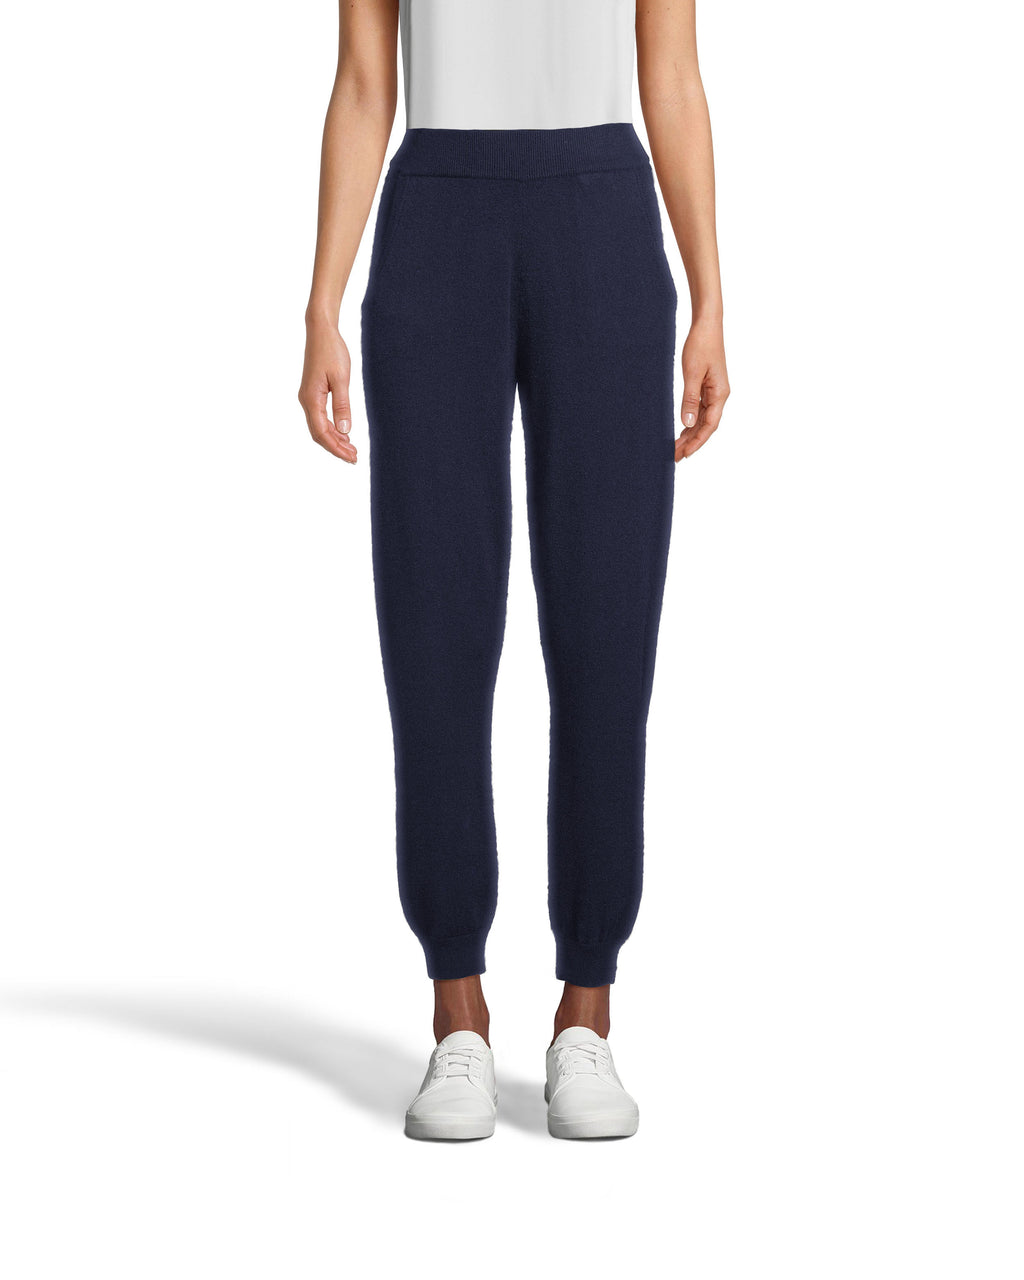 CP18507 - CASHMERE JOGGER PANTS - bottoms - pants - These joggers may look basic, but they're crafted from luxurious 100% cashmere. Designed in a classic jogger silhouette with a drawstring waist and cuffed ankles. Add 1 line break Stylist tip: Pair with a cashmere sweater for complete cozy ensemble.